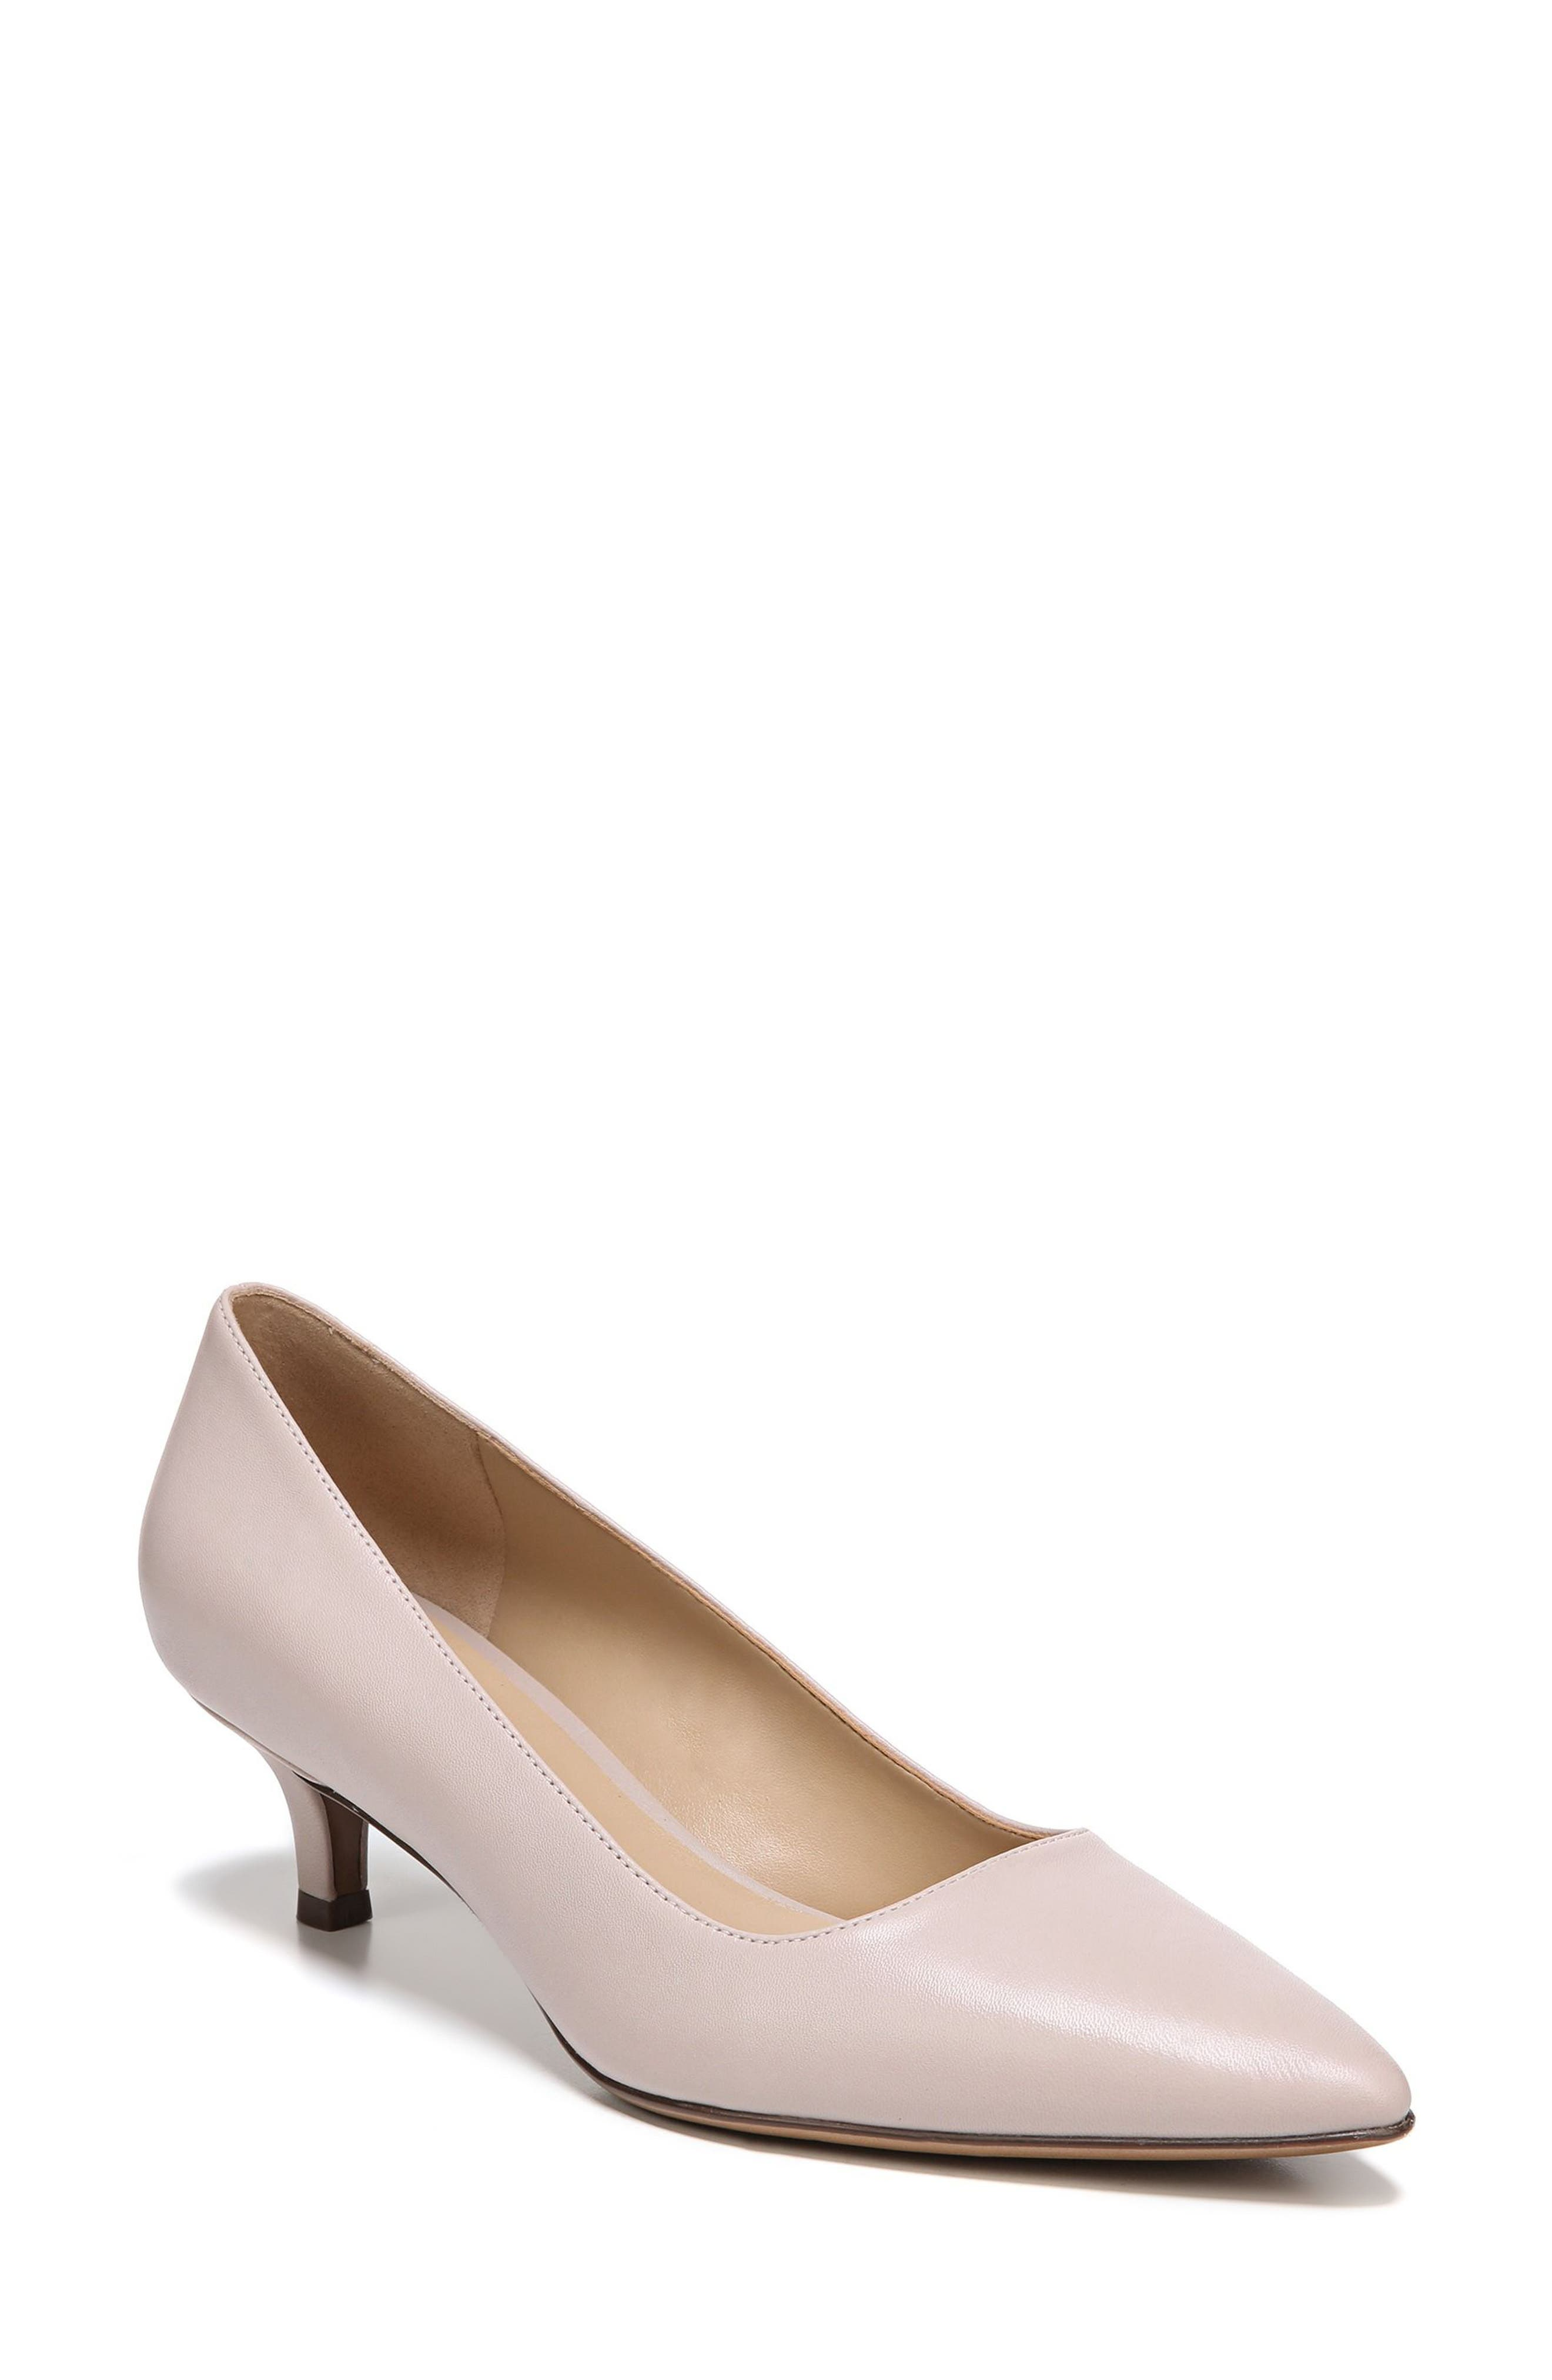 NATURALIZER Pippa Pump, Main, color, GREY LEATHER